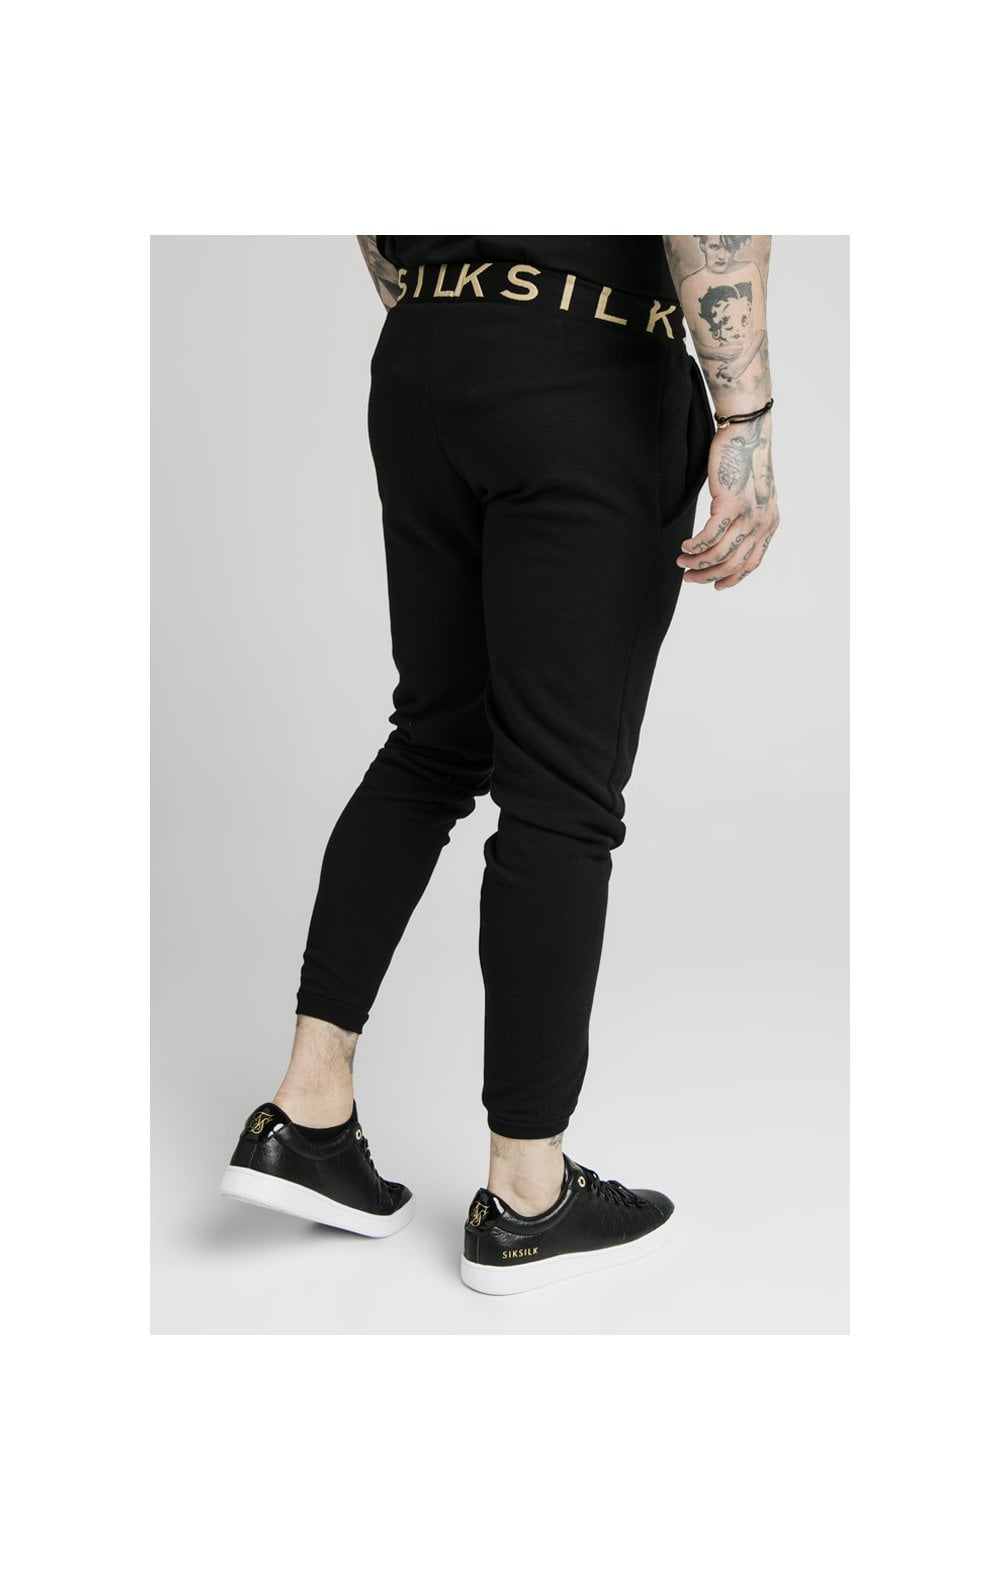 Load image into Gallery viewer, SikSilk Elastic Jacquard Pants - Black (1)